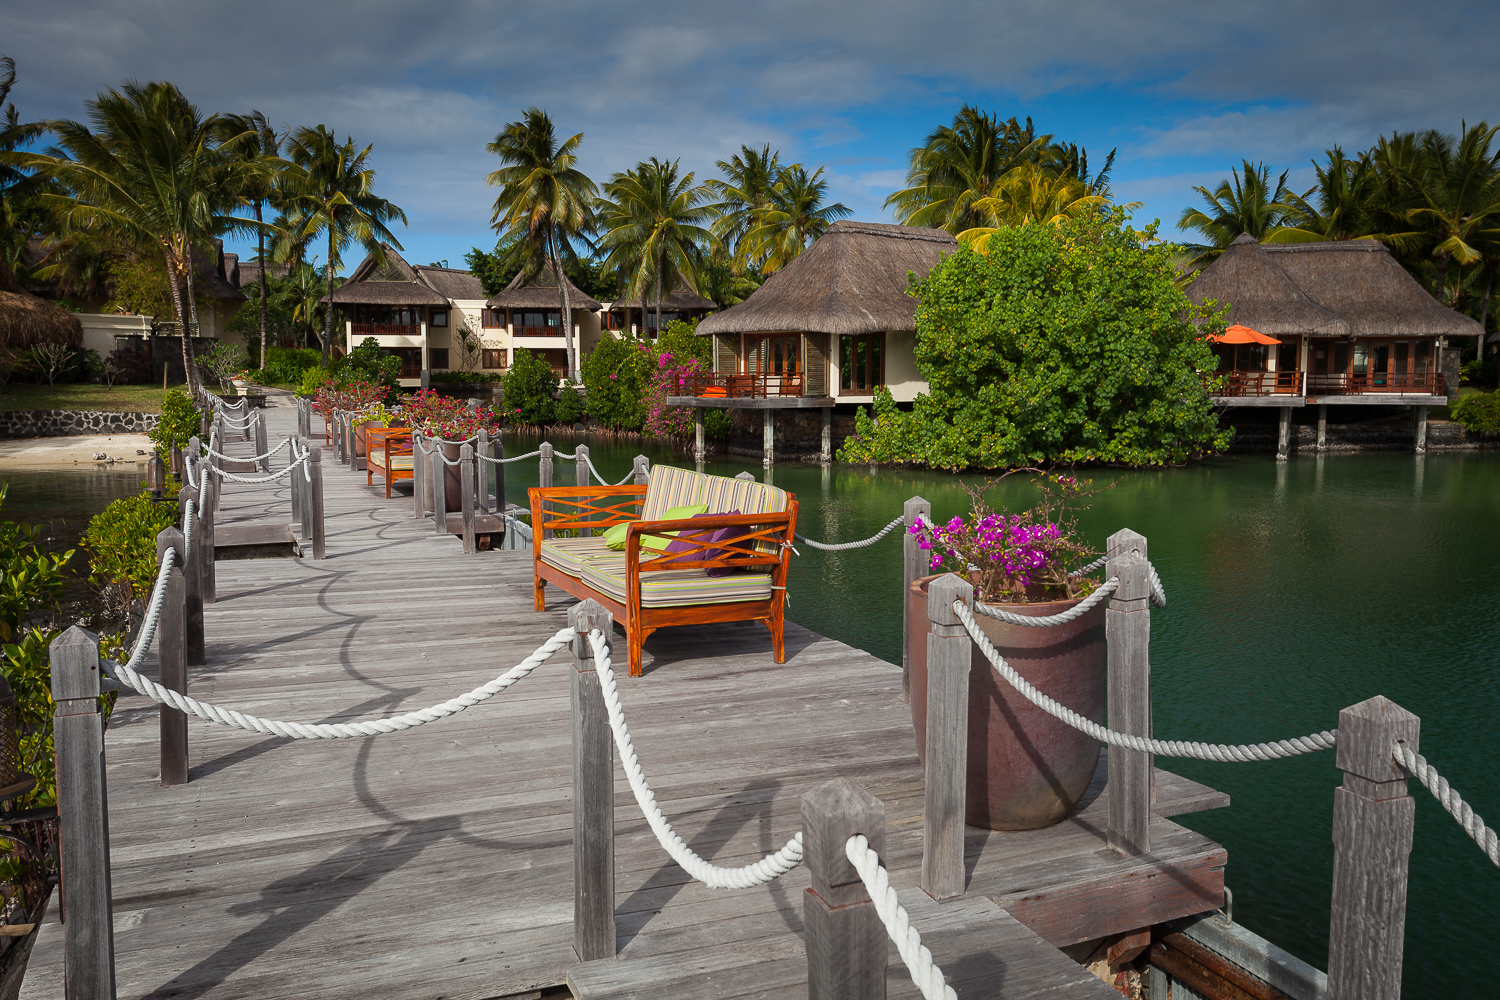 Amazing photos from Mauritius by photographer Svein-Magne Tunli ...